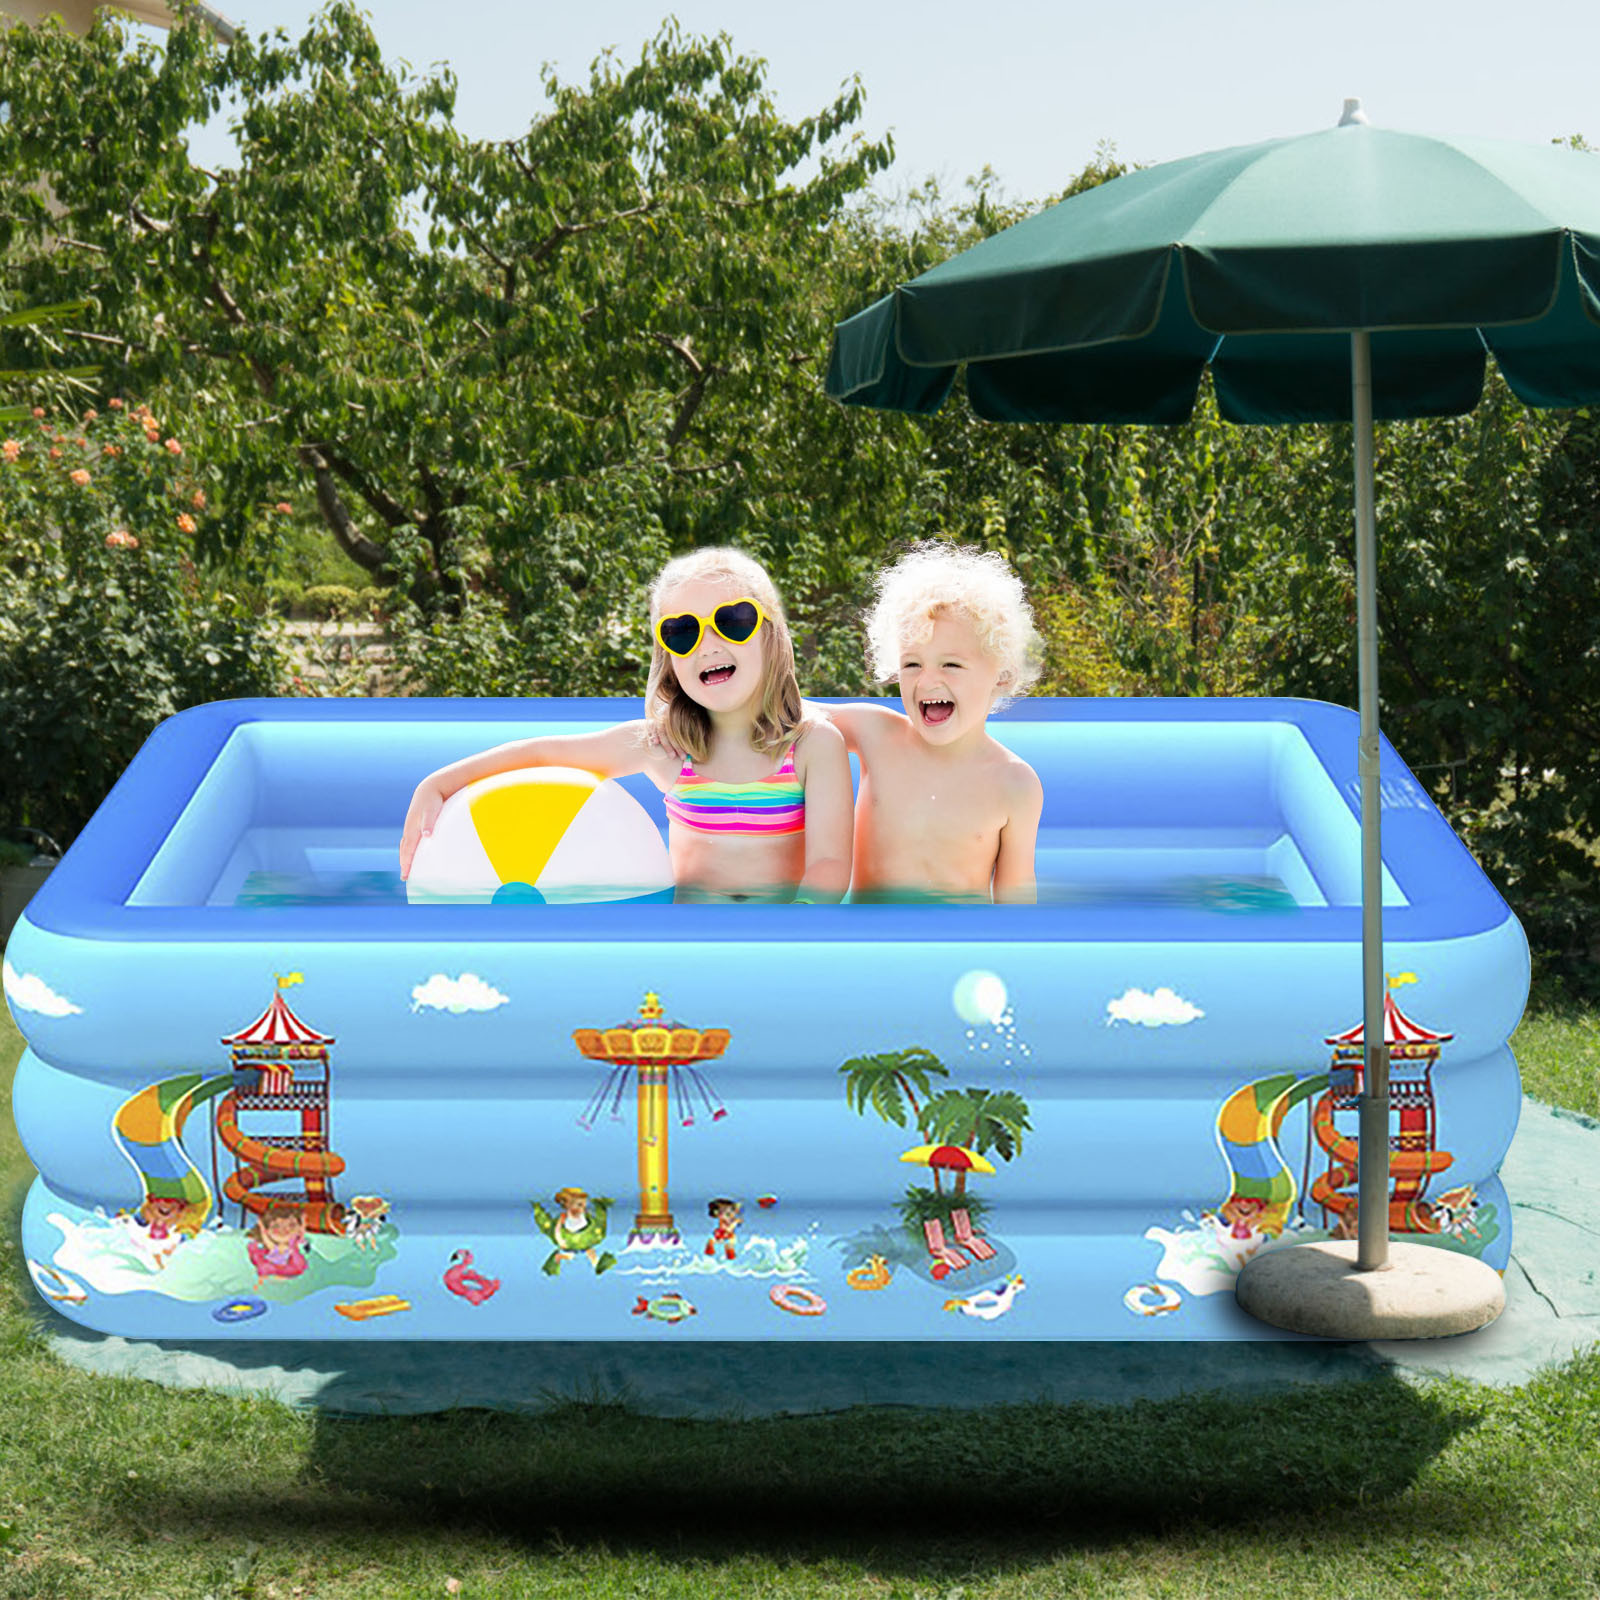 Inflatable Swimming Pool Children's Baby Paddling Square Bubble Bottom Pool Swimming Supplies Toddler Games Piscina Kid Pool